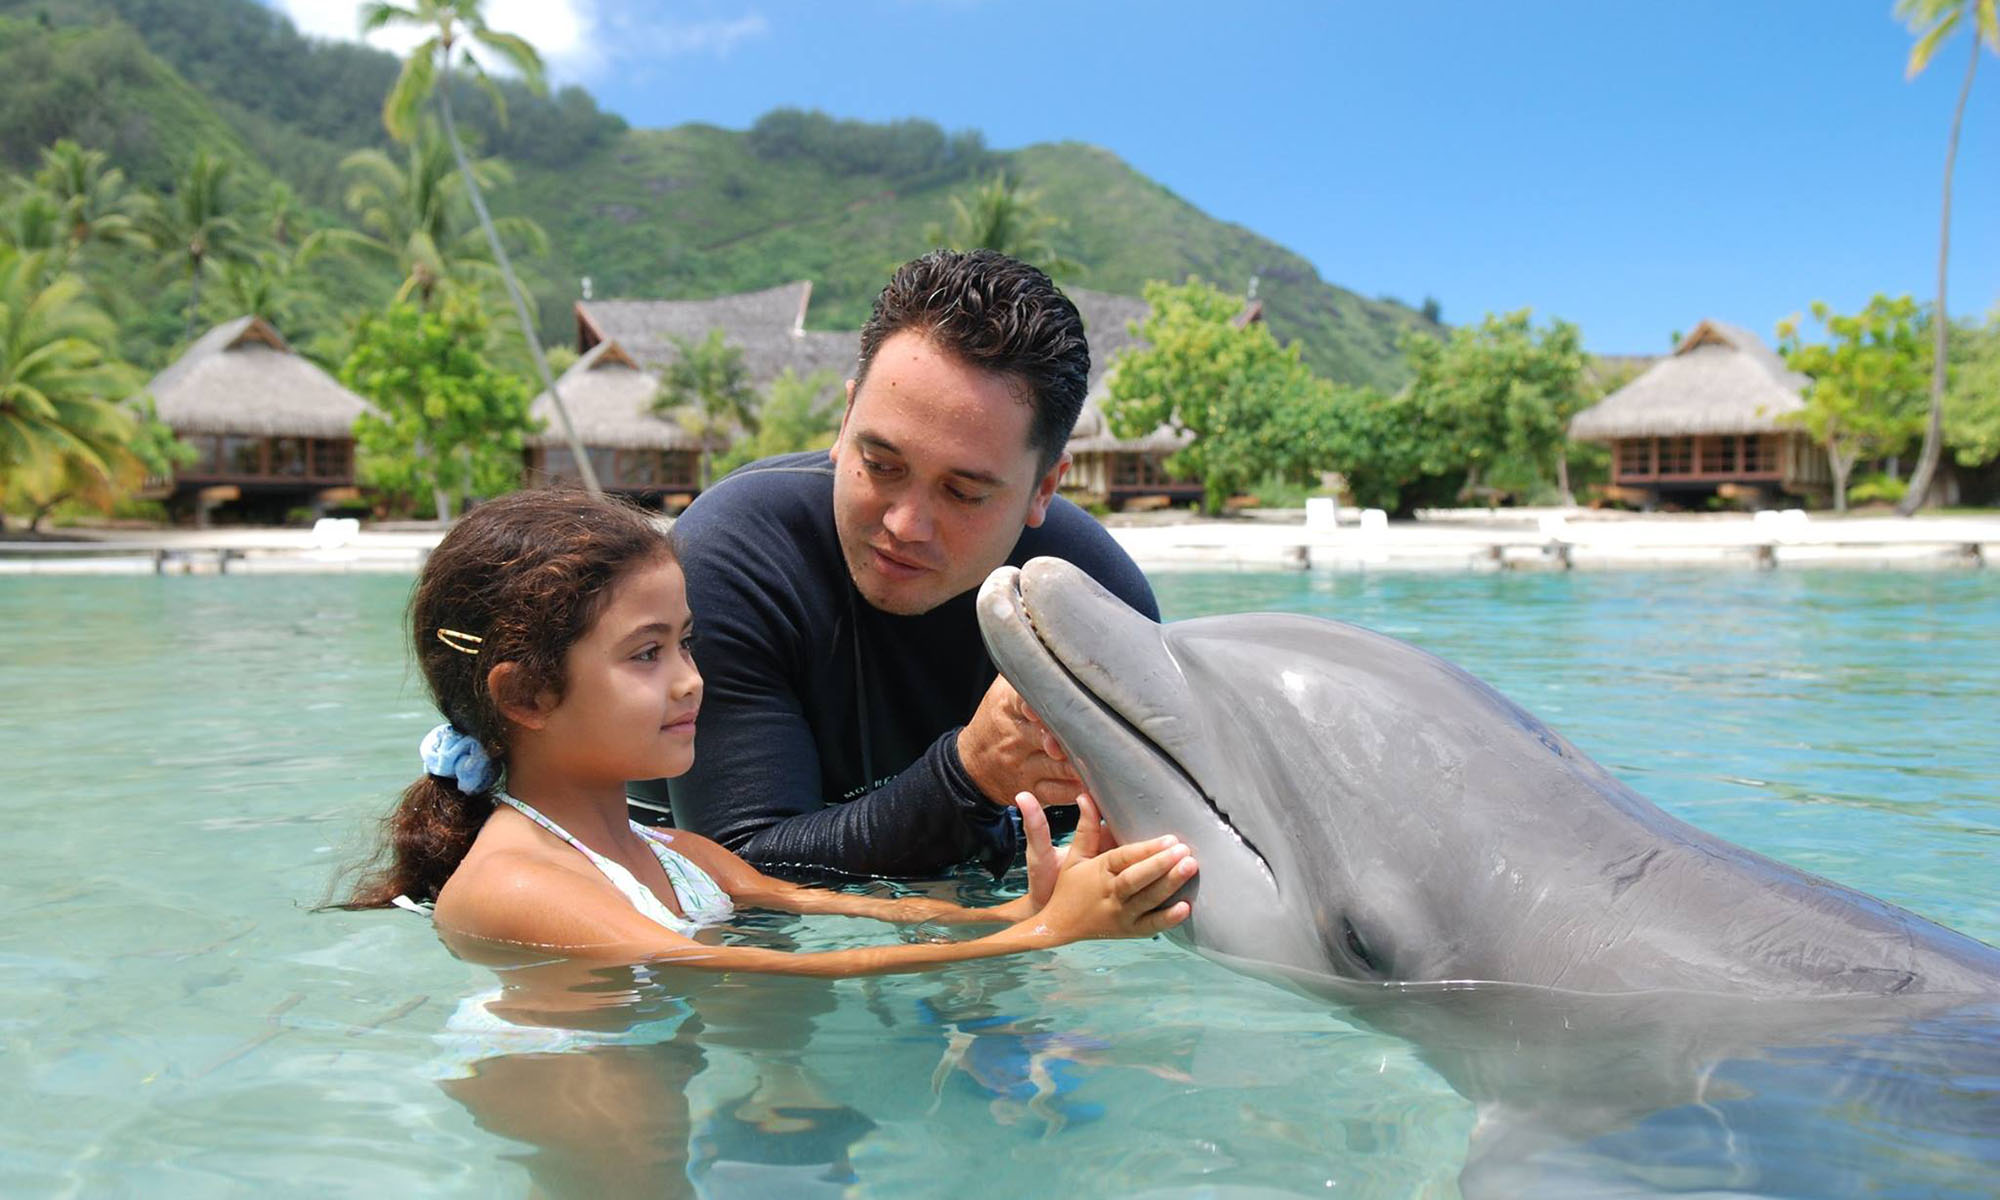 InterContinental Moorea Resort and Spa, Family Experience with the Dolphins